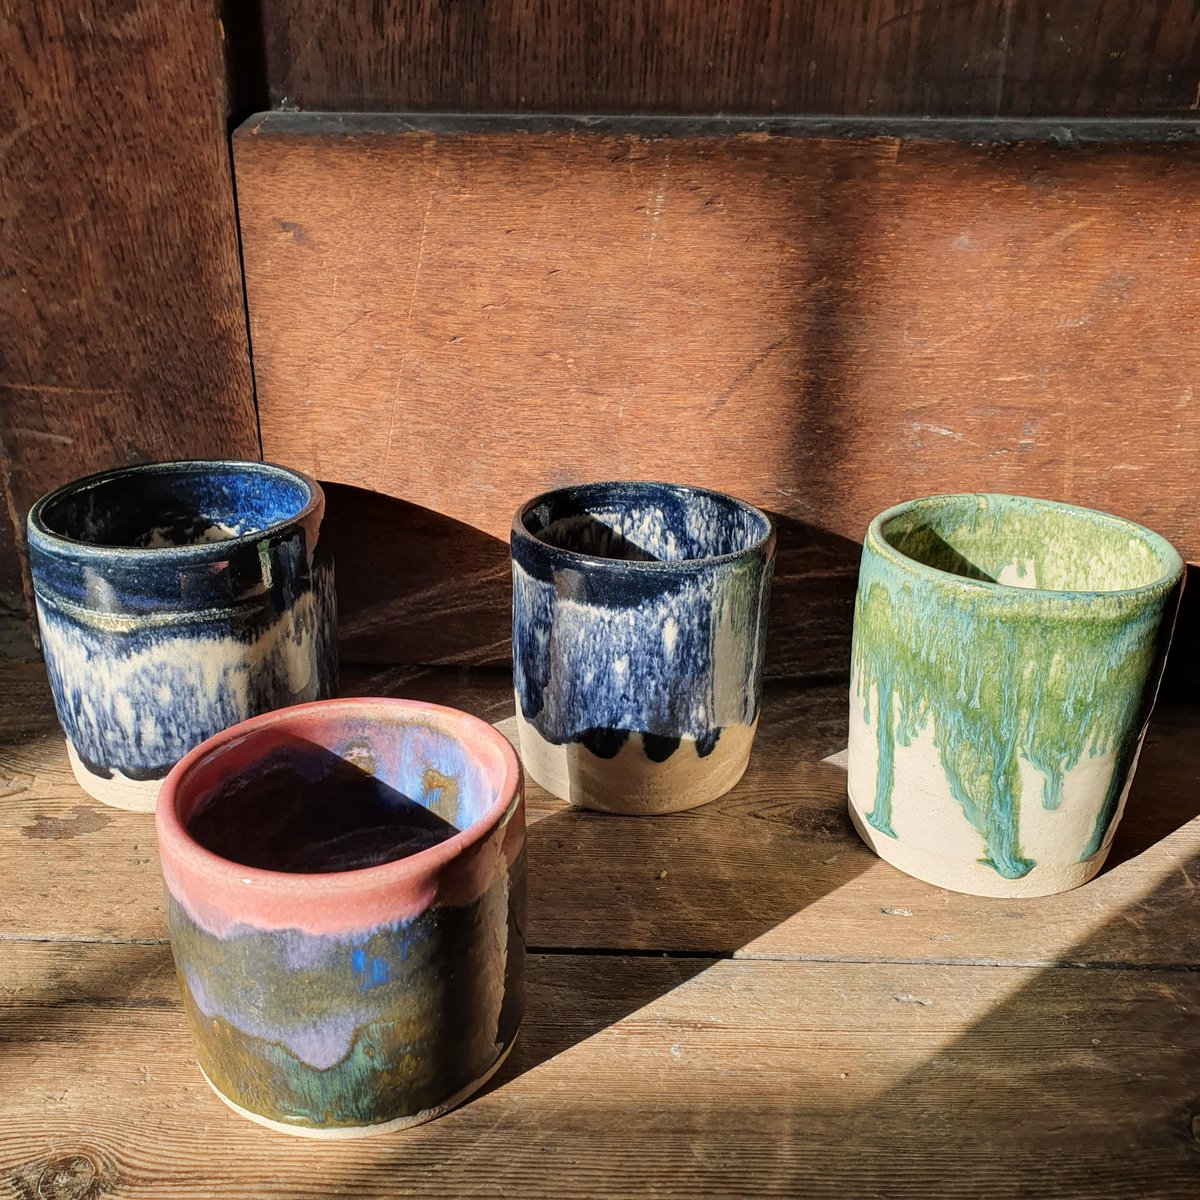 Our in-gallery shop will return on 9 October, but you can still browse our online shop for beautiful gifts, cards, homeware and more. These beautiful ceramic pots were made by local ceramicist, Alice Carter Ceramics. View the full collection online: fabrica.org.uk/shop